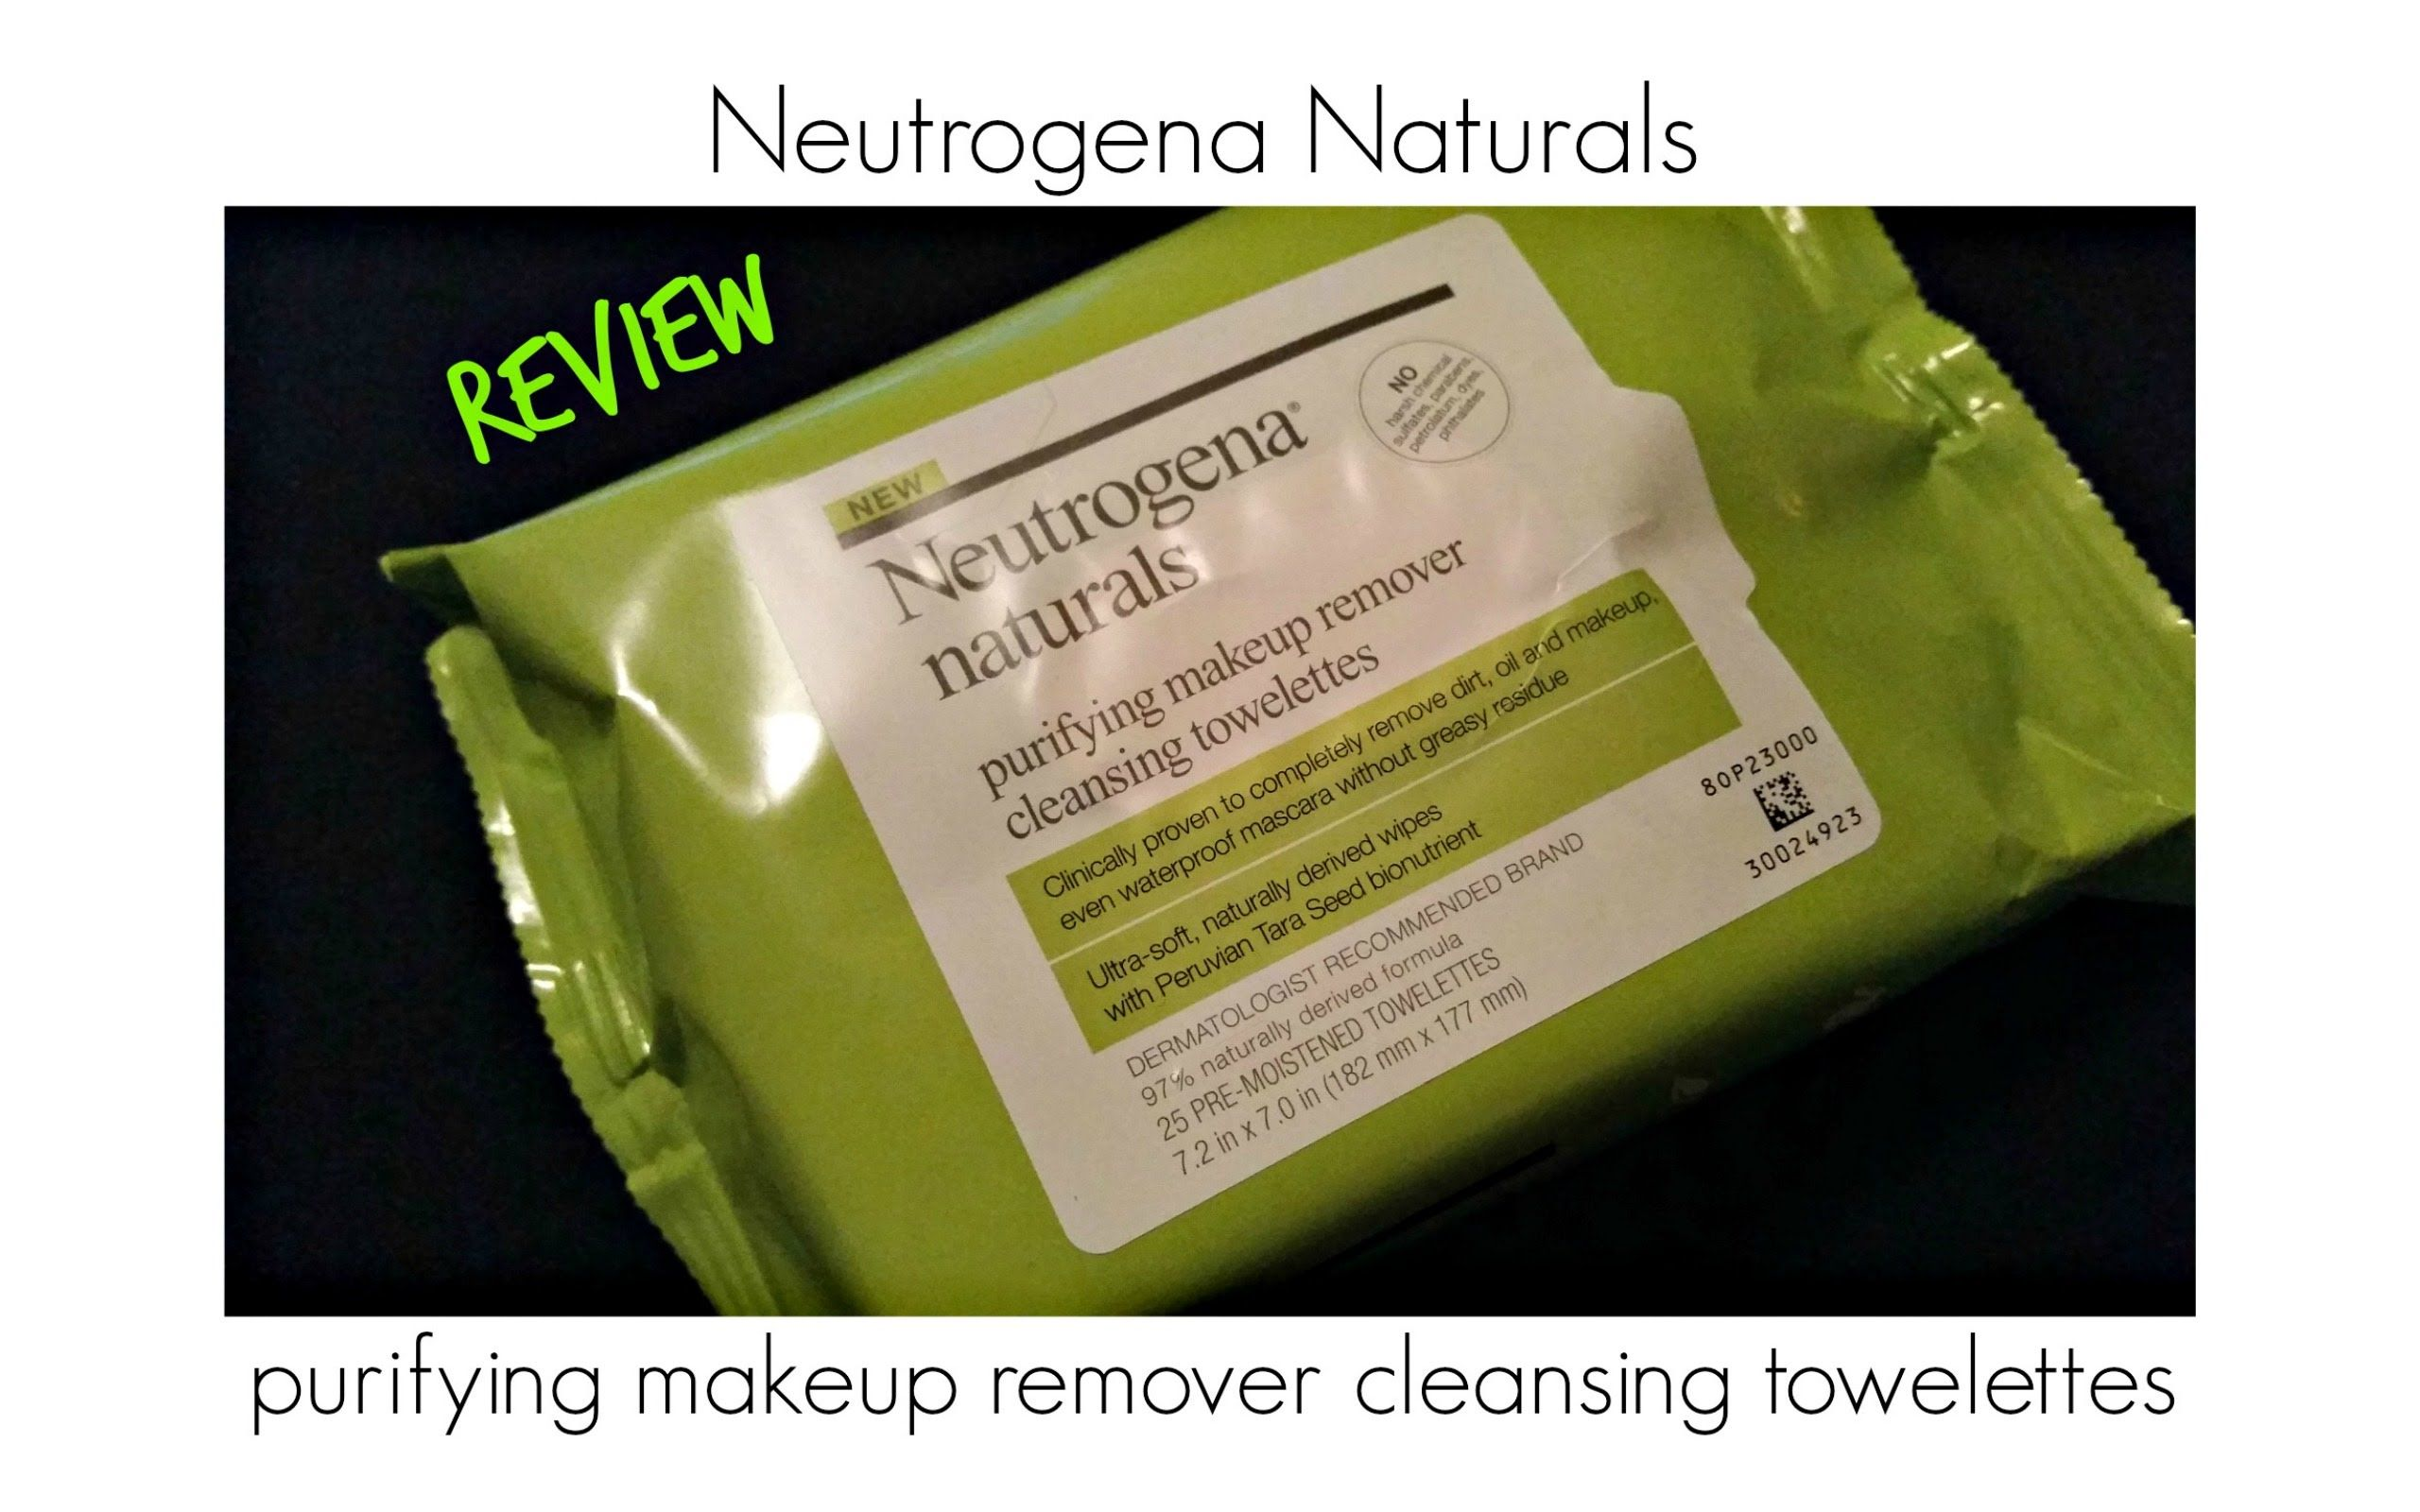 Neutrogena naturals Review Makeup remover cleansing